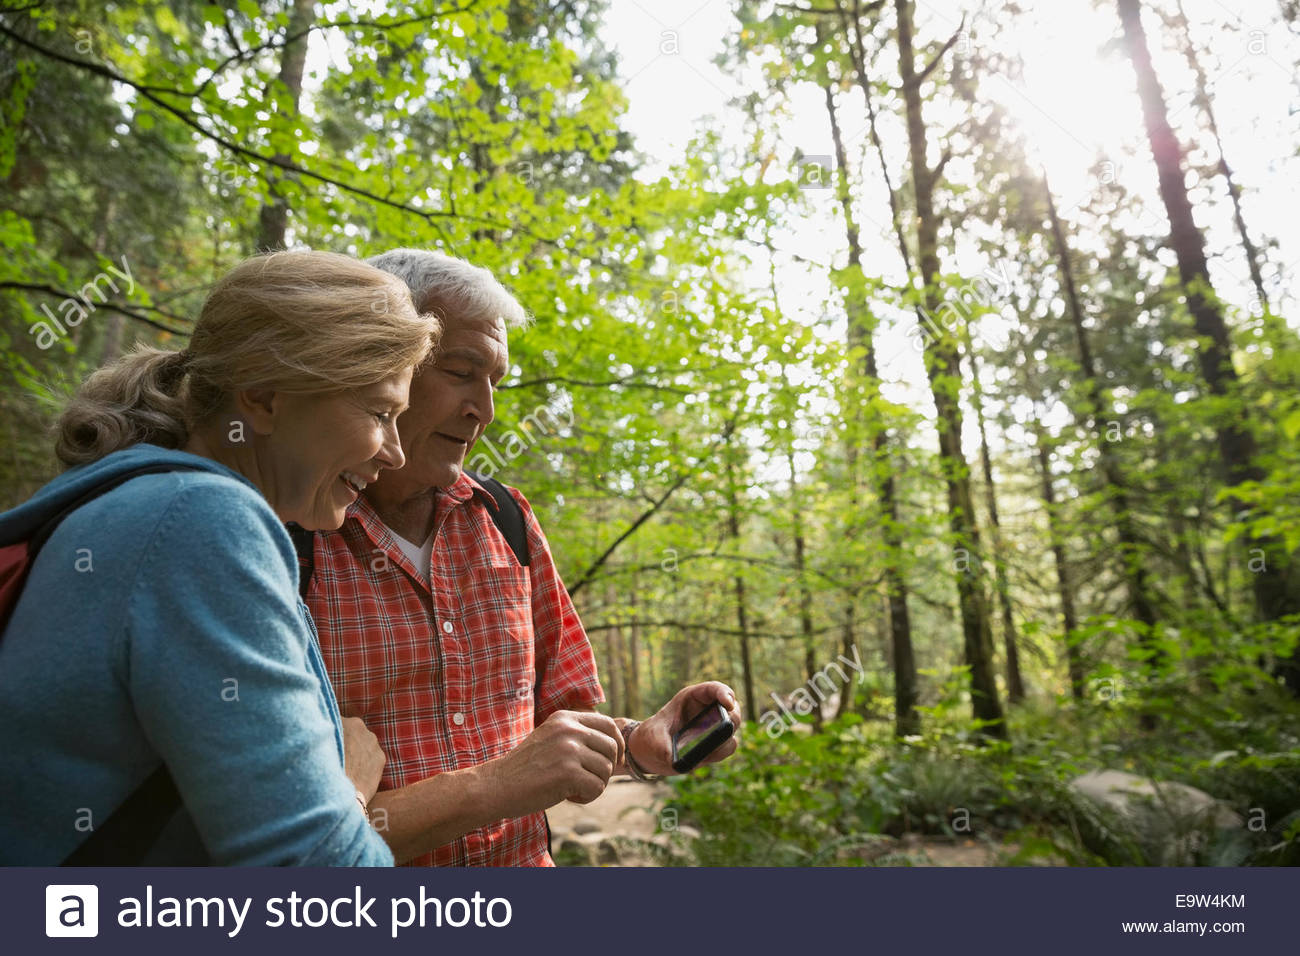 Couple looking at camera phone in woods - Stock Image